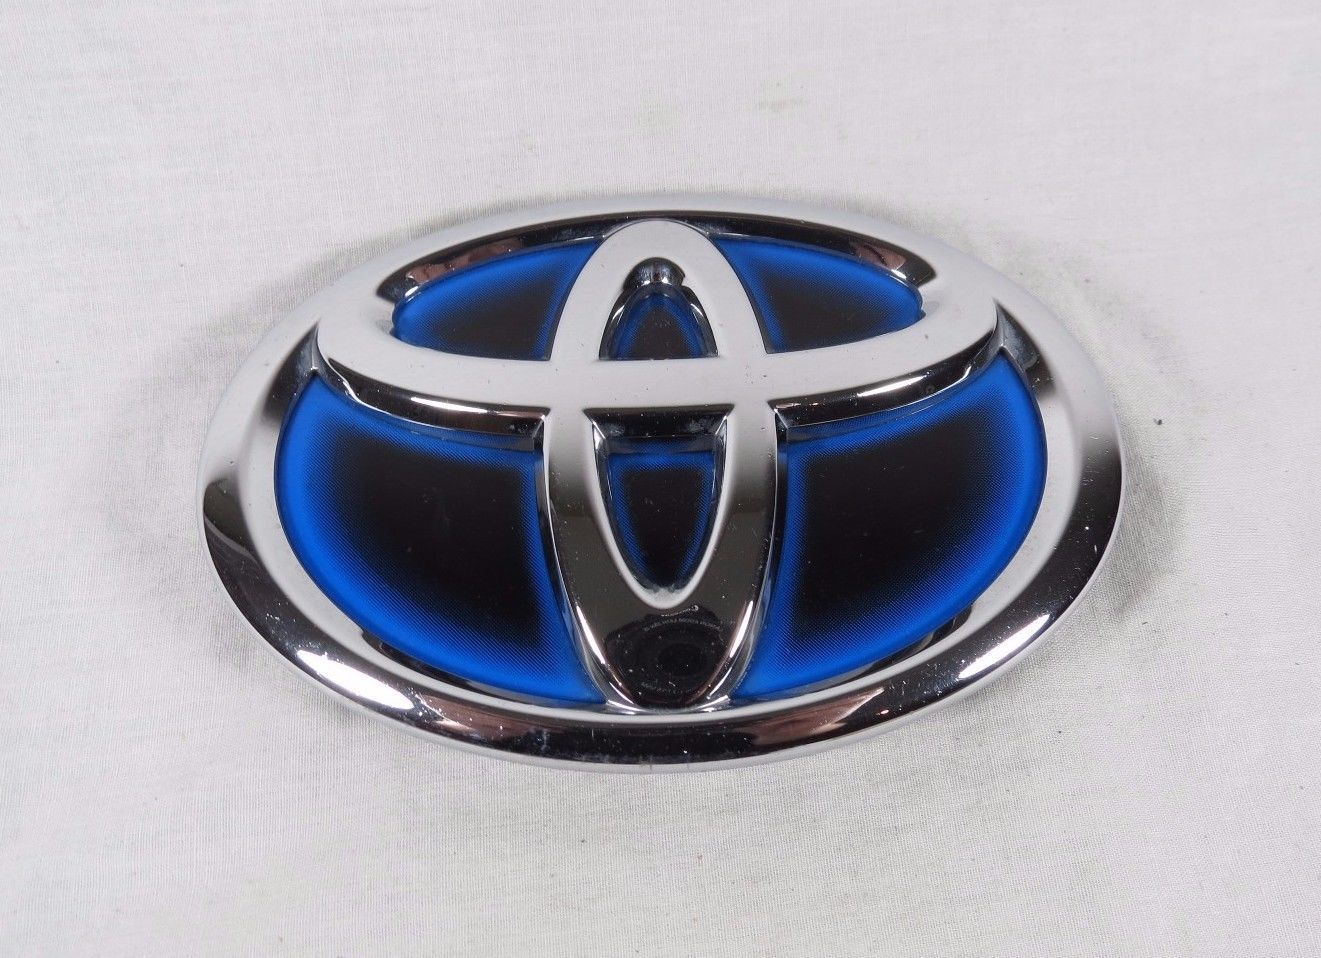 Cool great toyota hybrid grille emblem prius camry genuine oem grill badge sign symbol logo 2017 2018